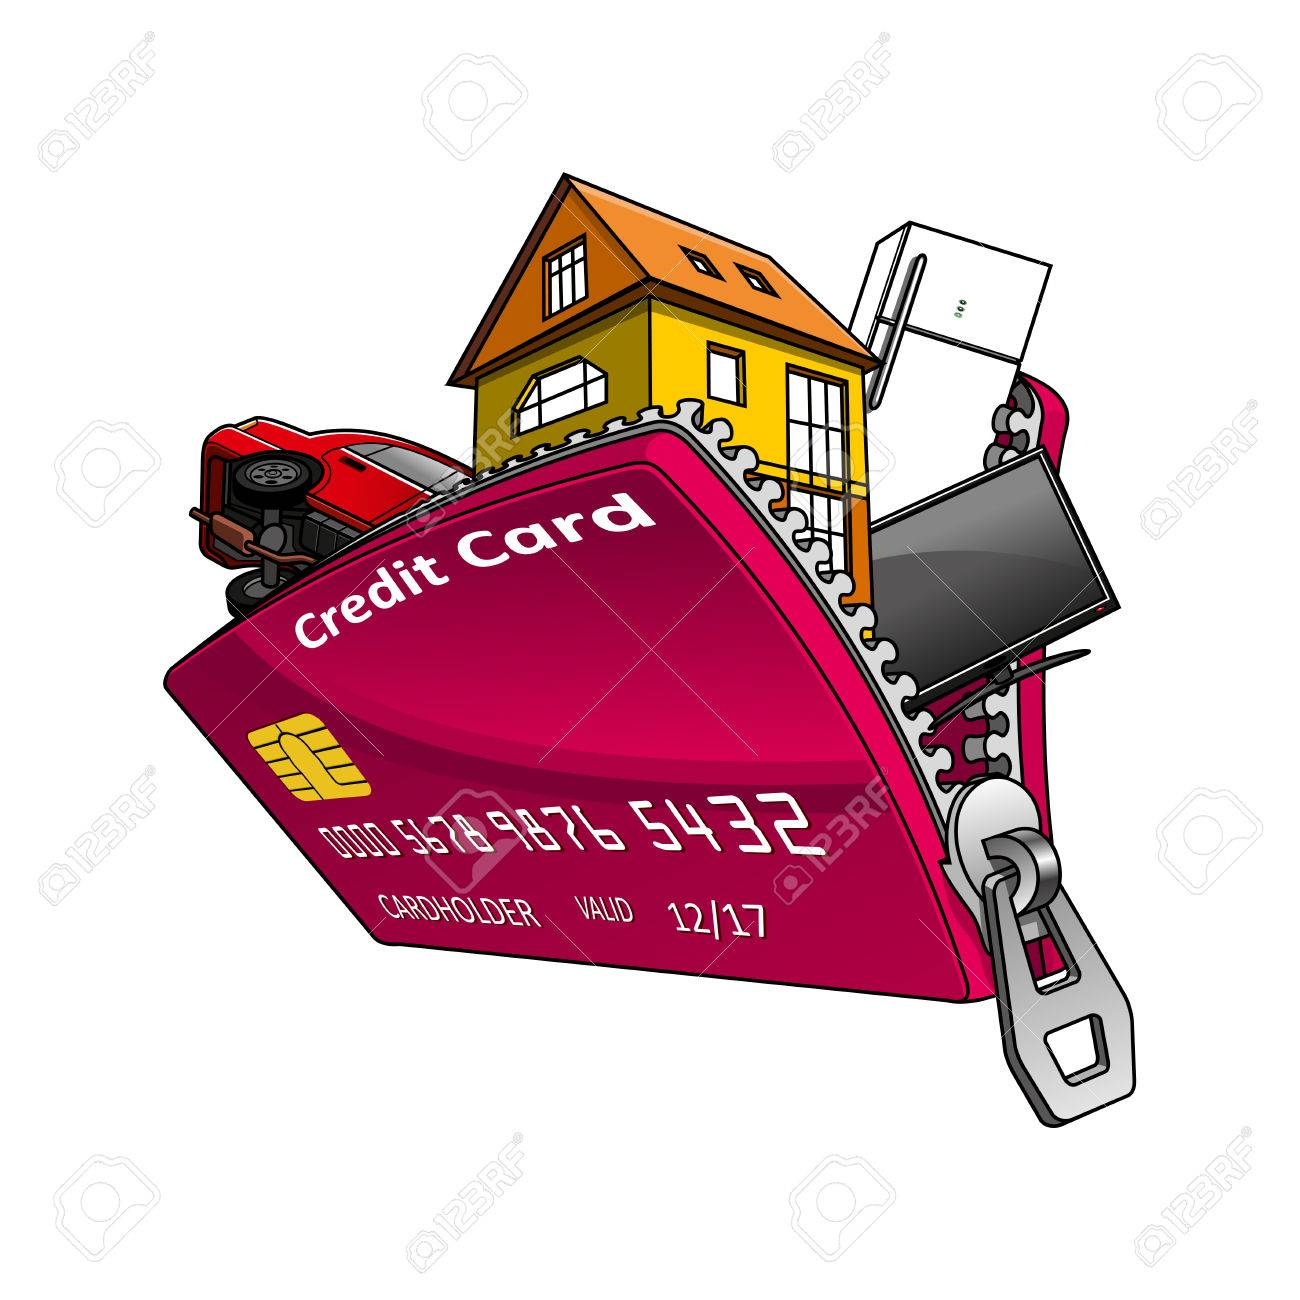 House, Car And Home Appliance Inside Open Red Bank Credit Card ...